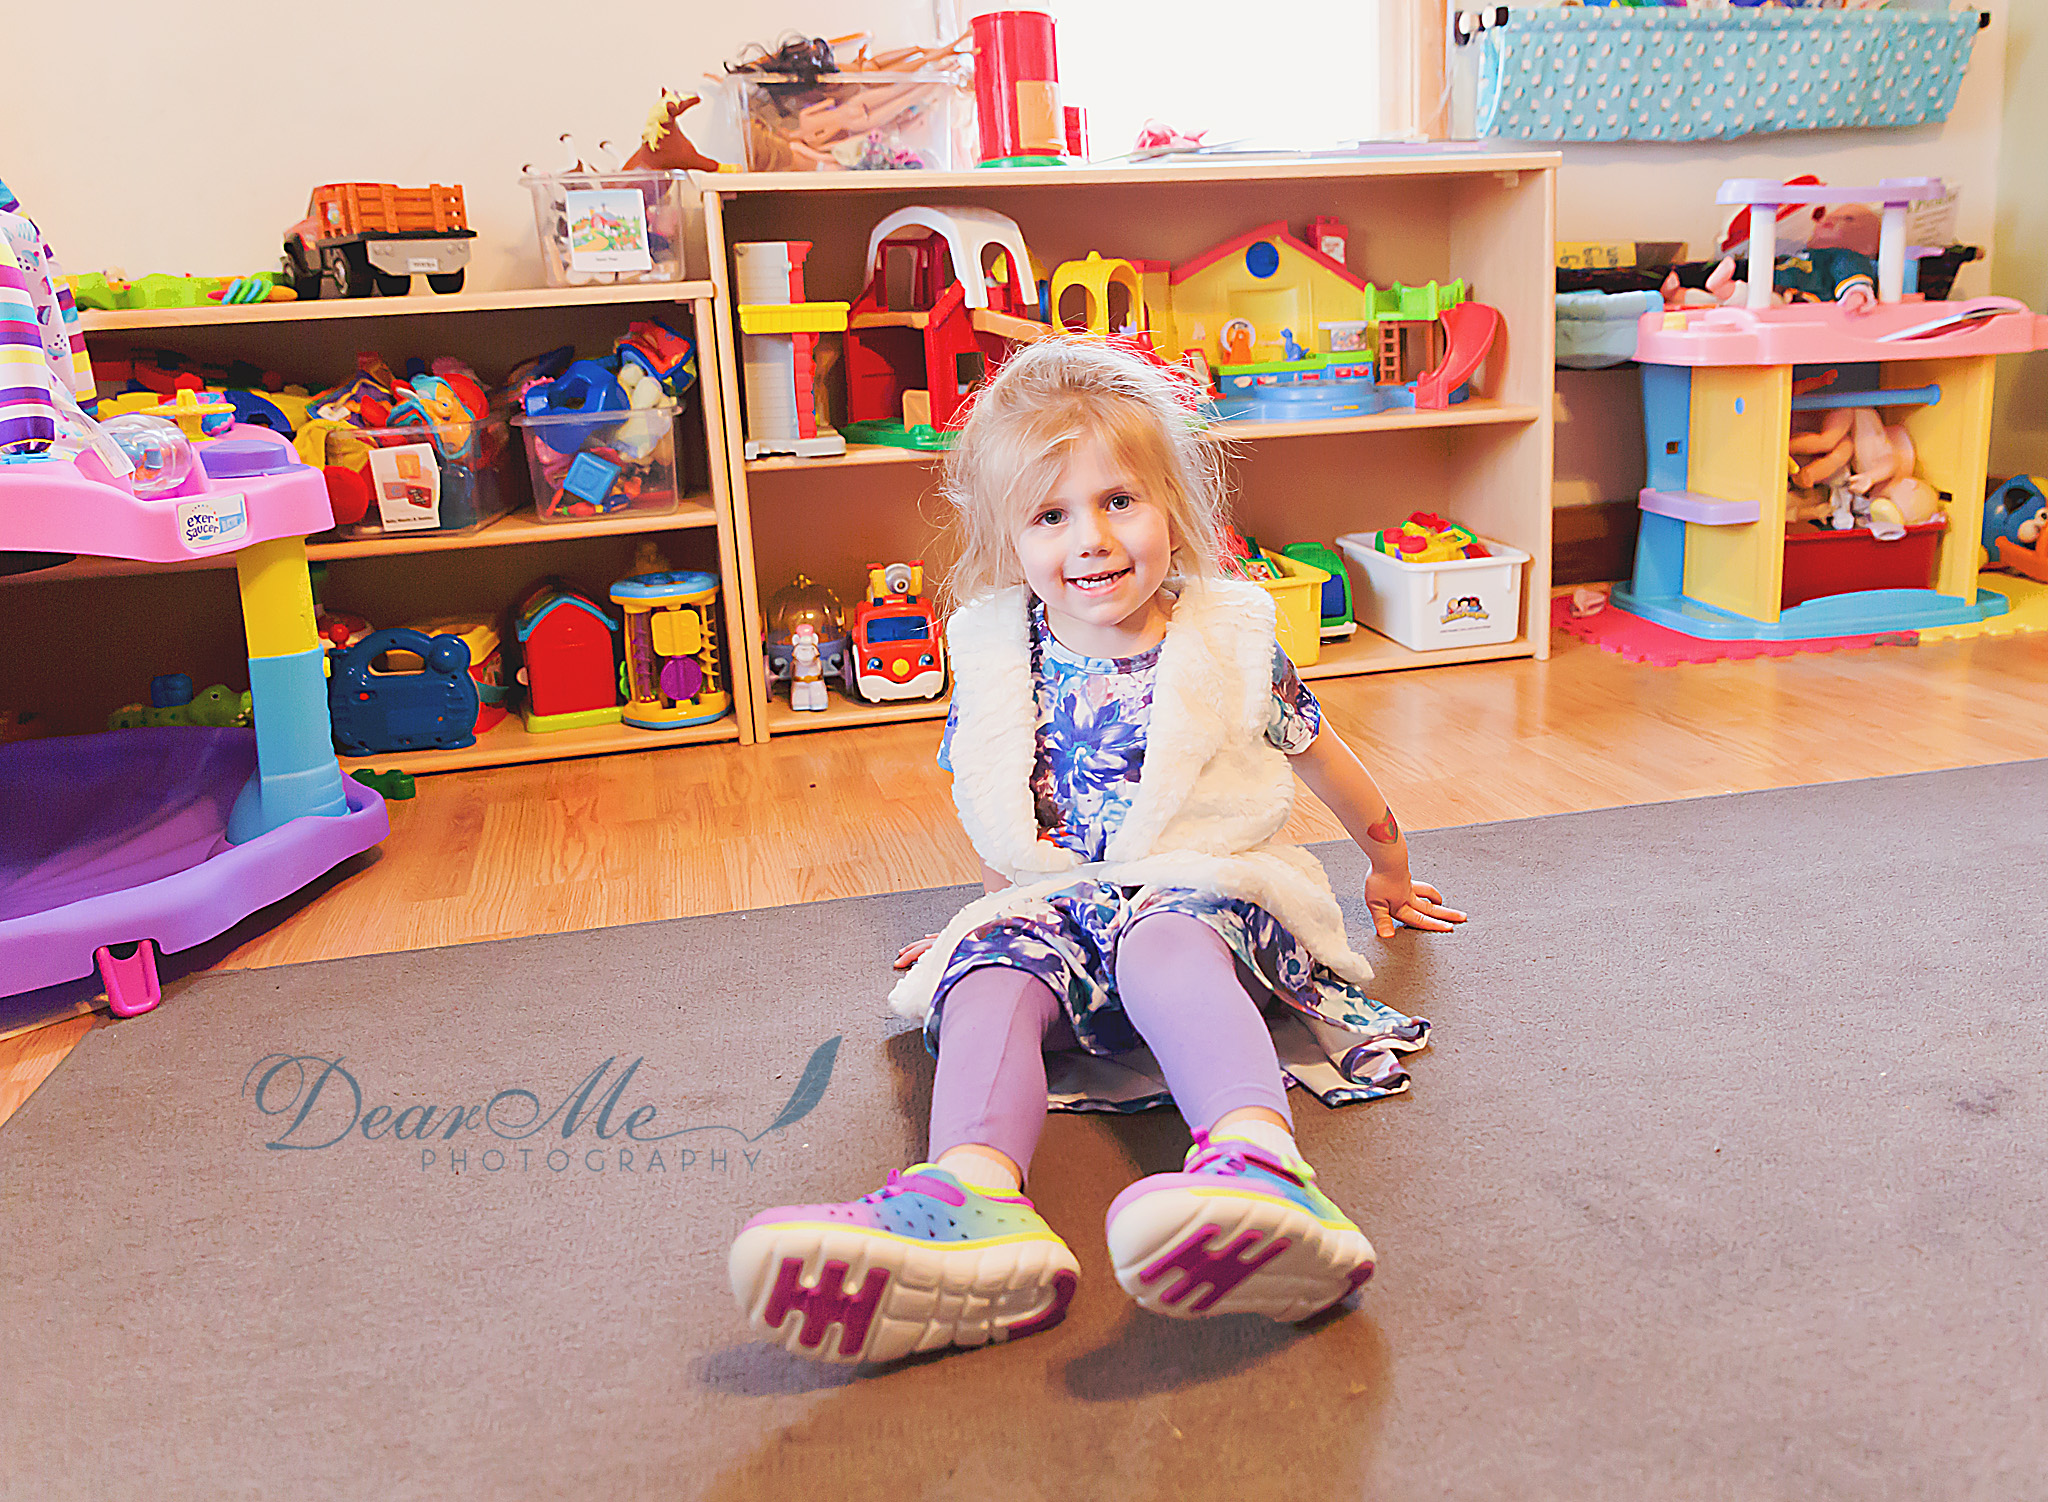 dear me photography mandan nd photographer girl sitting on rug in front of toys